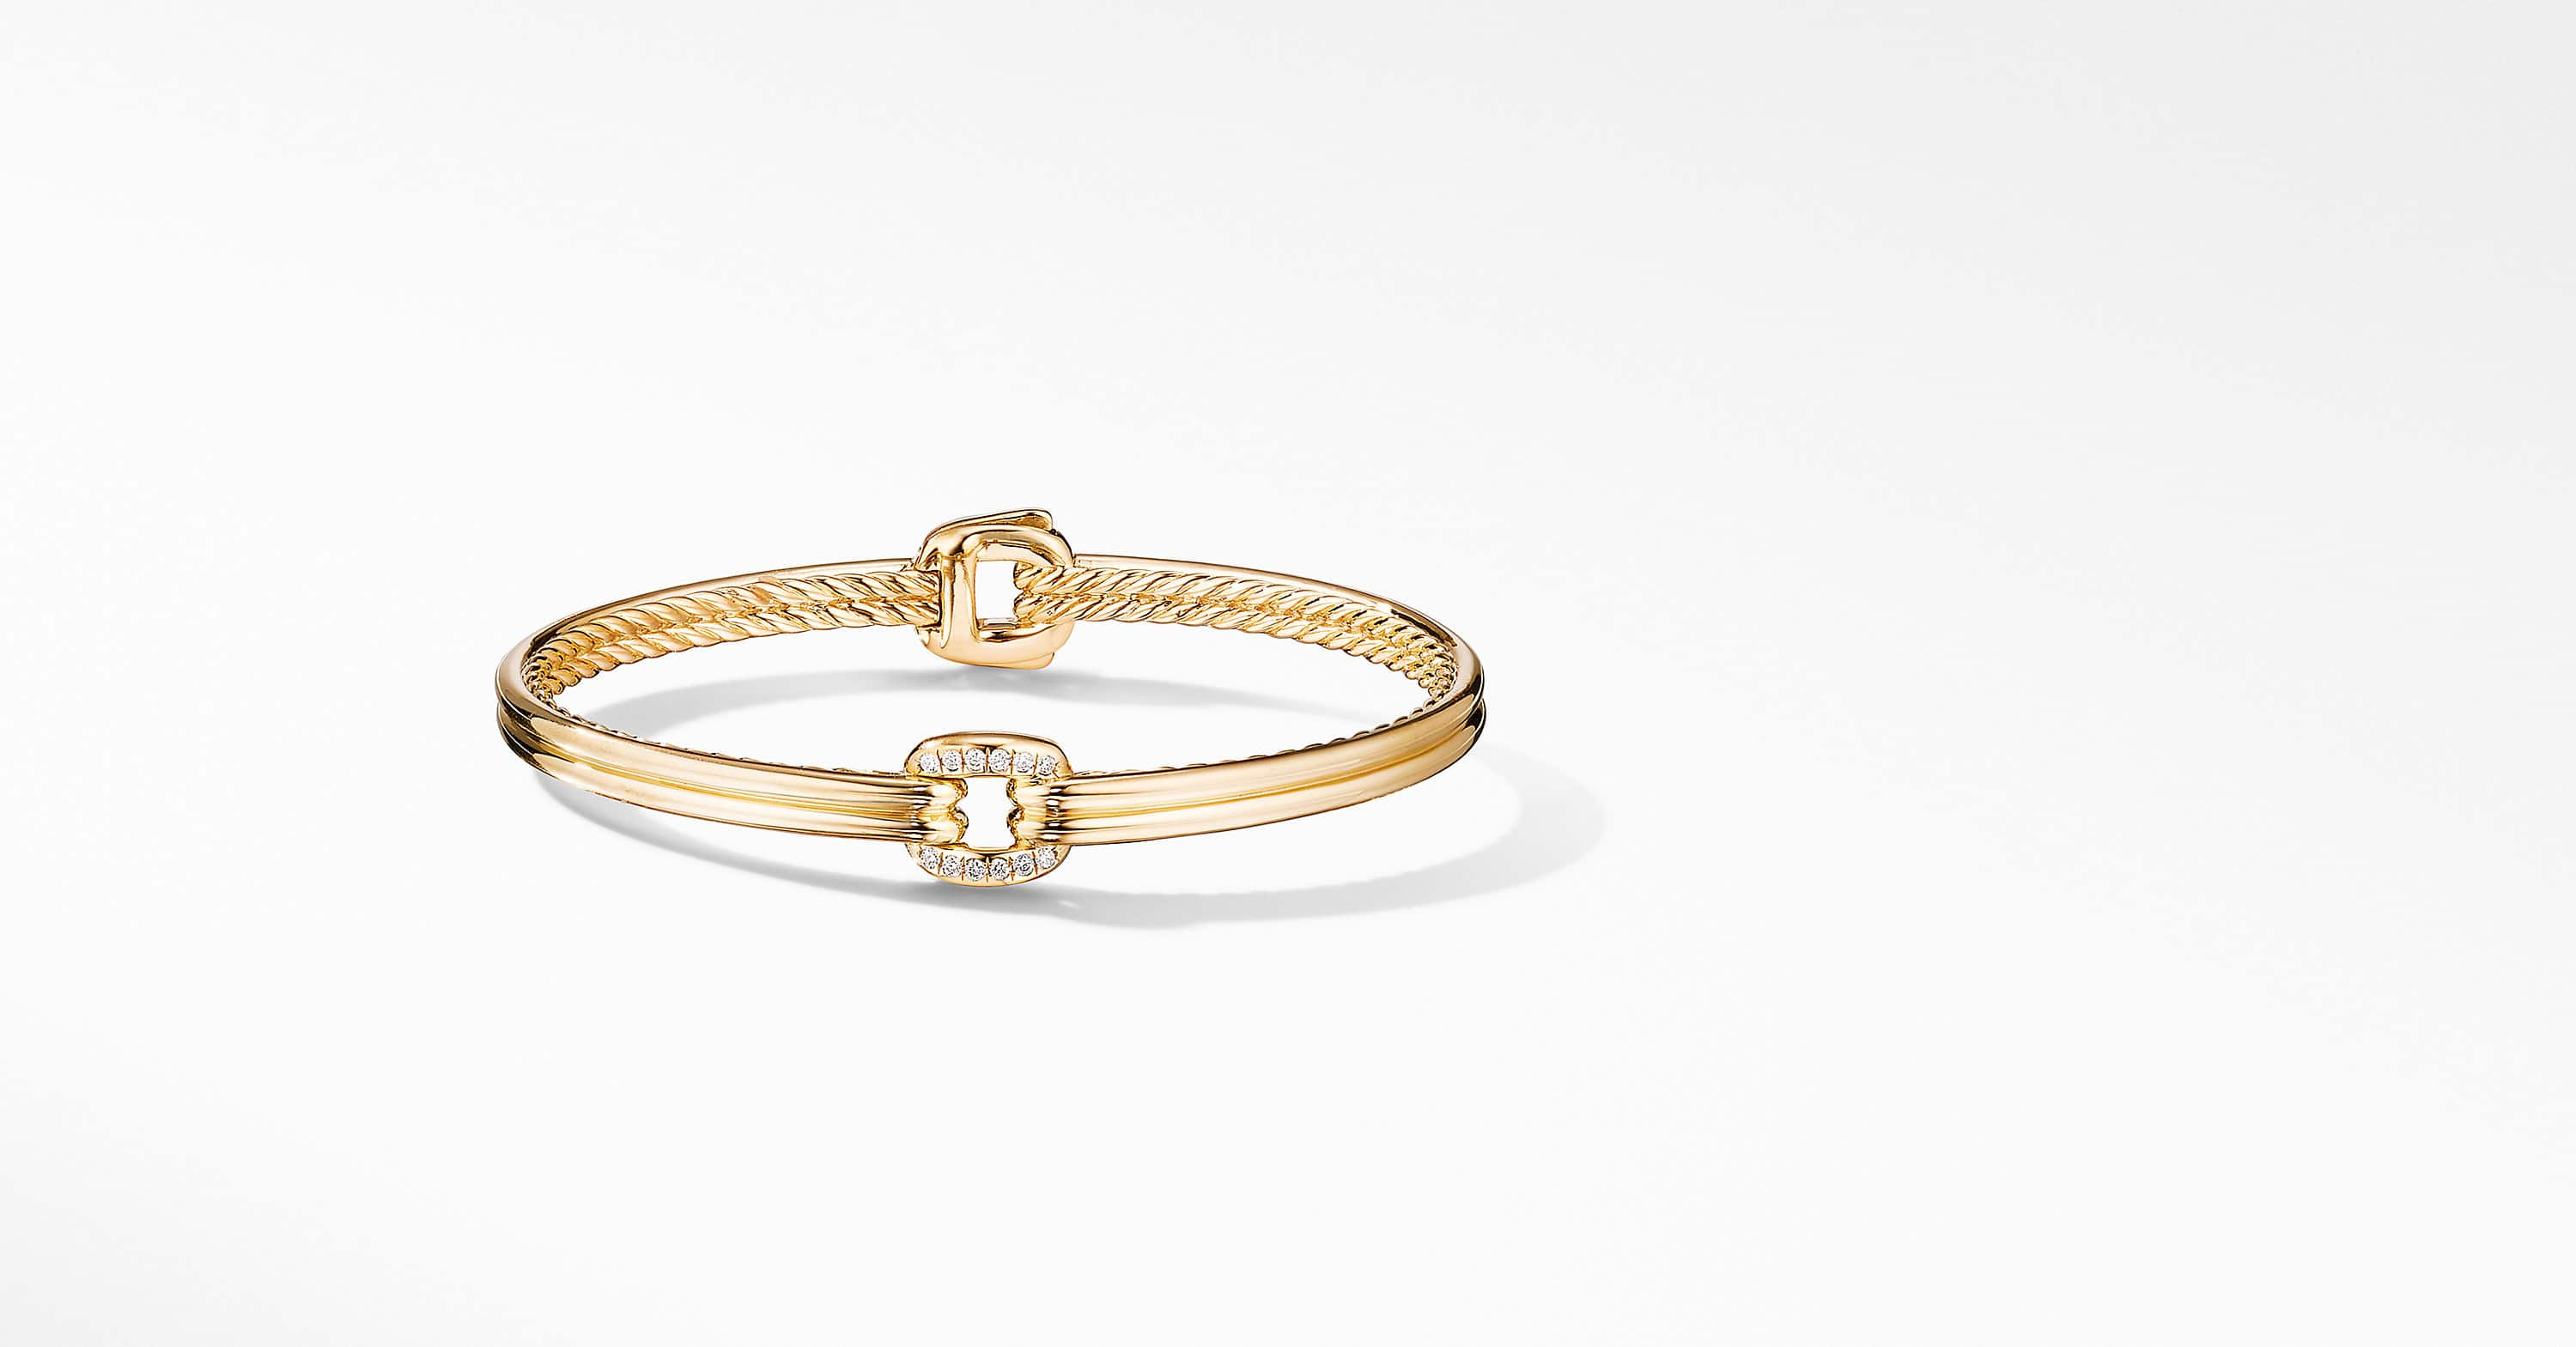 Thoroughbred Center Link Bracelet in 18K Yellow Gold with Diamonds